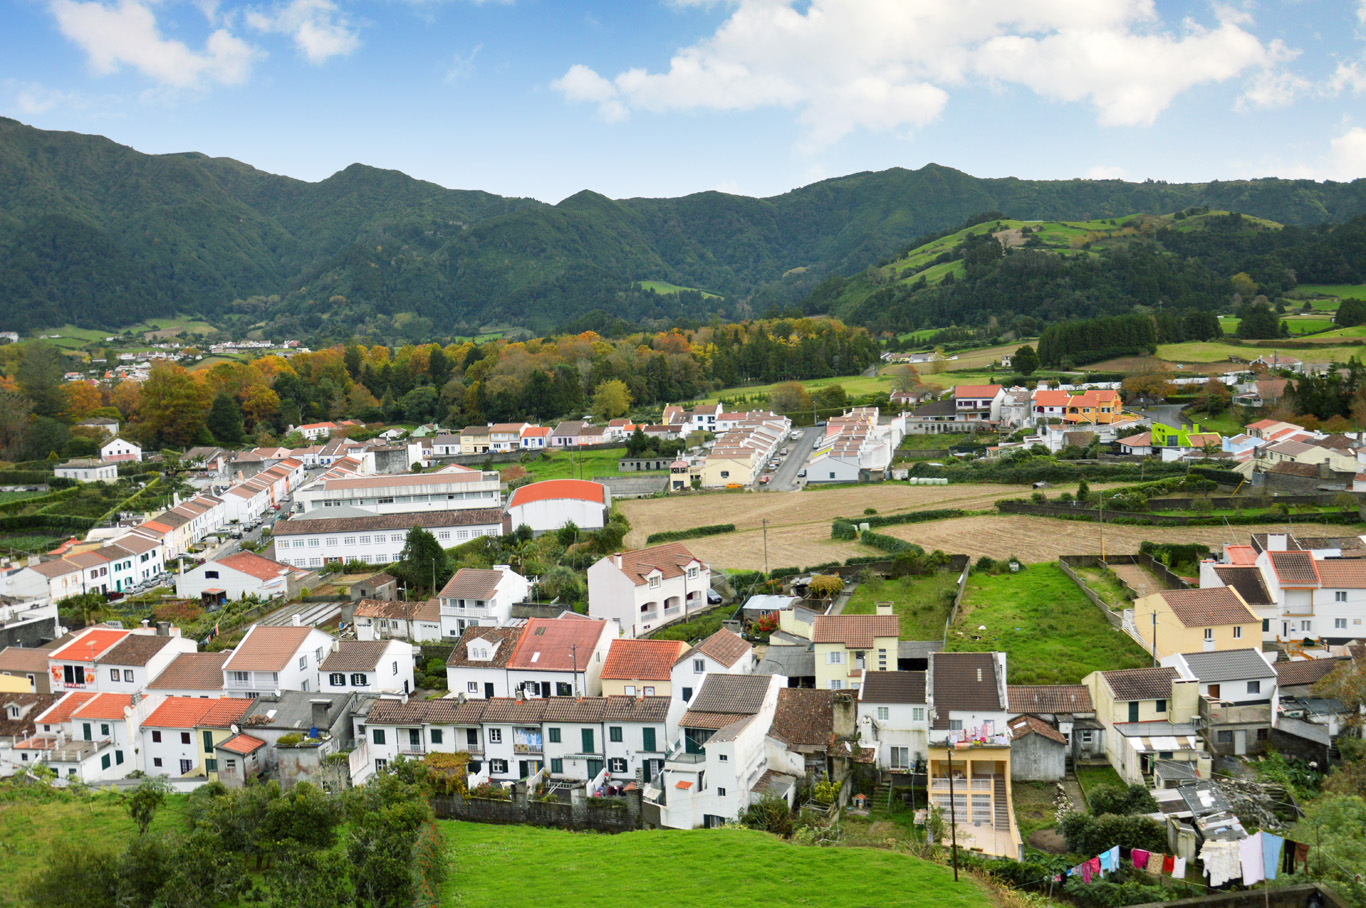 Furnas Village